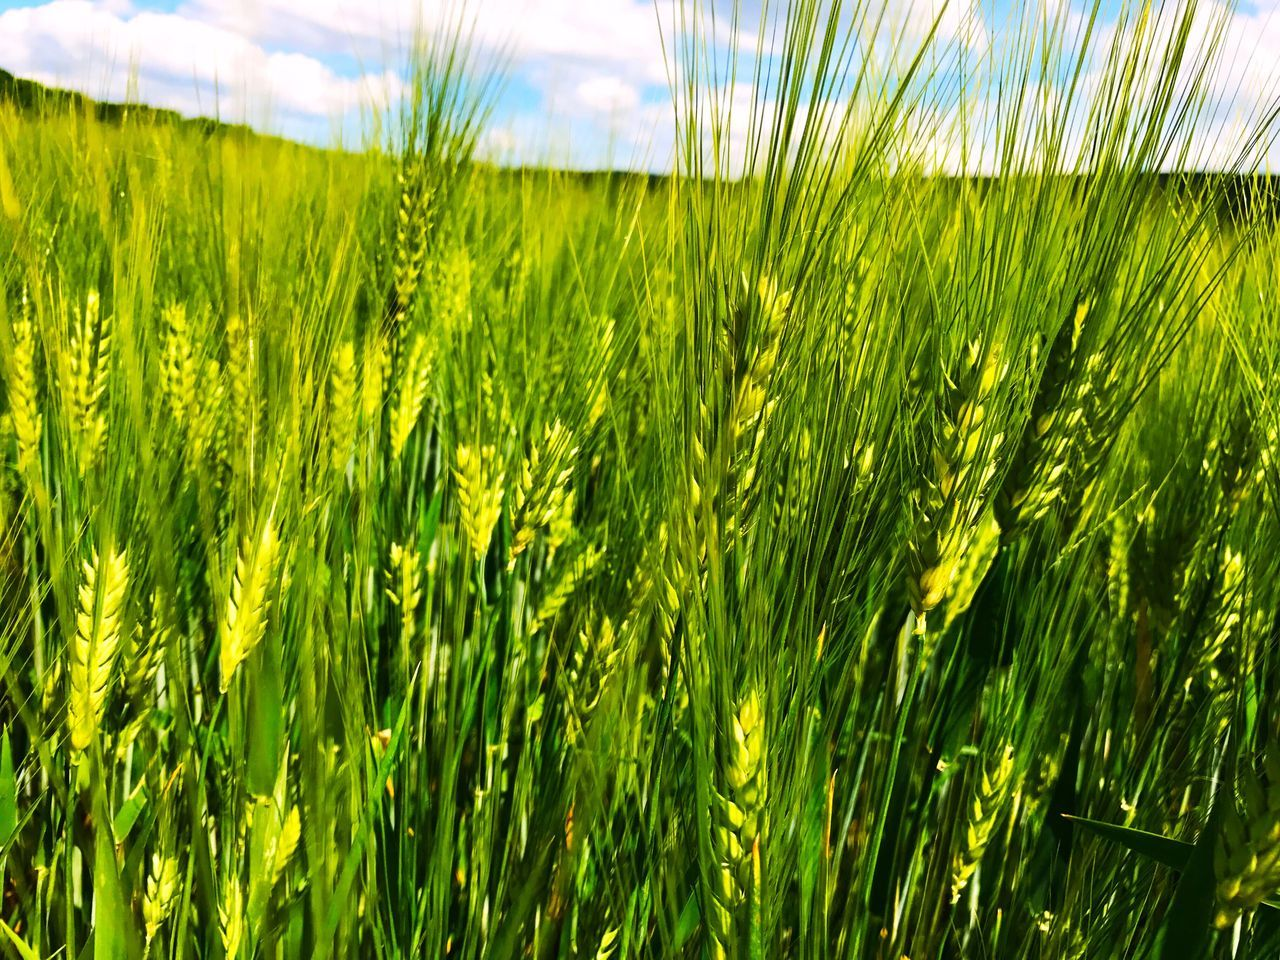 growth, green color, nature, agriculture, field, grass, farm, crop, plant, beauty in nature, day, tranquility, outdoors, cereal plant, ear of wheat, rural scene, freshness, close-up, no people, wheat, sky, scenics, rice paddy